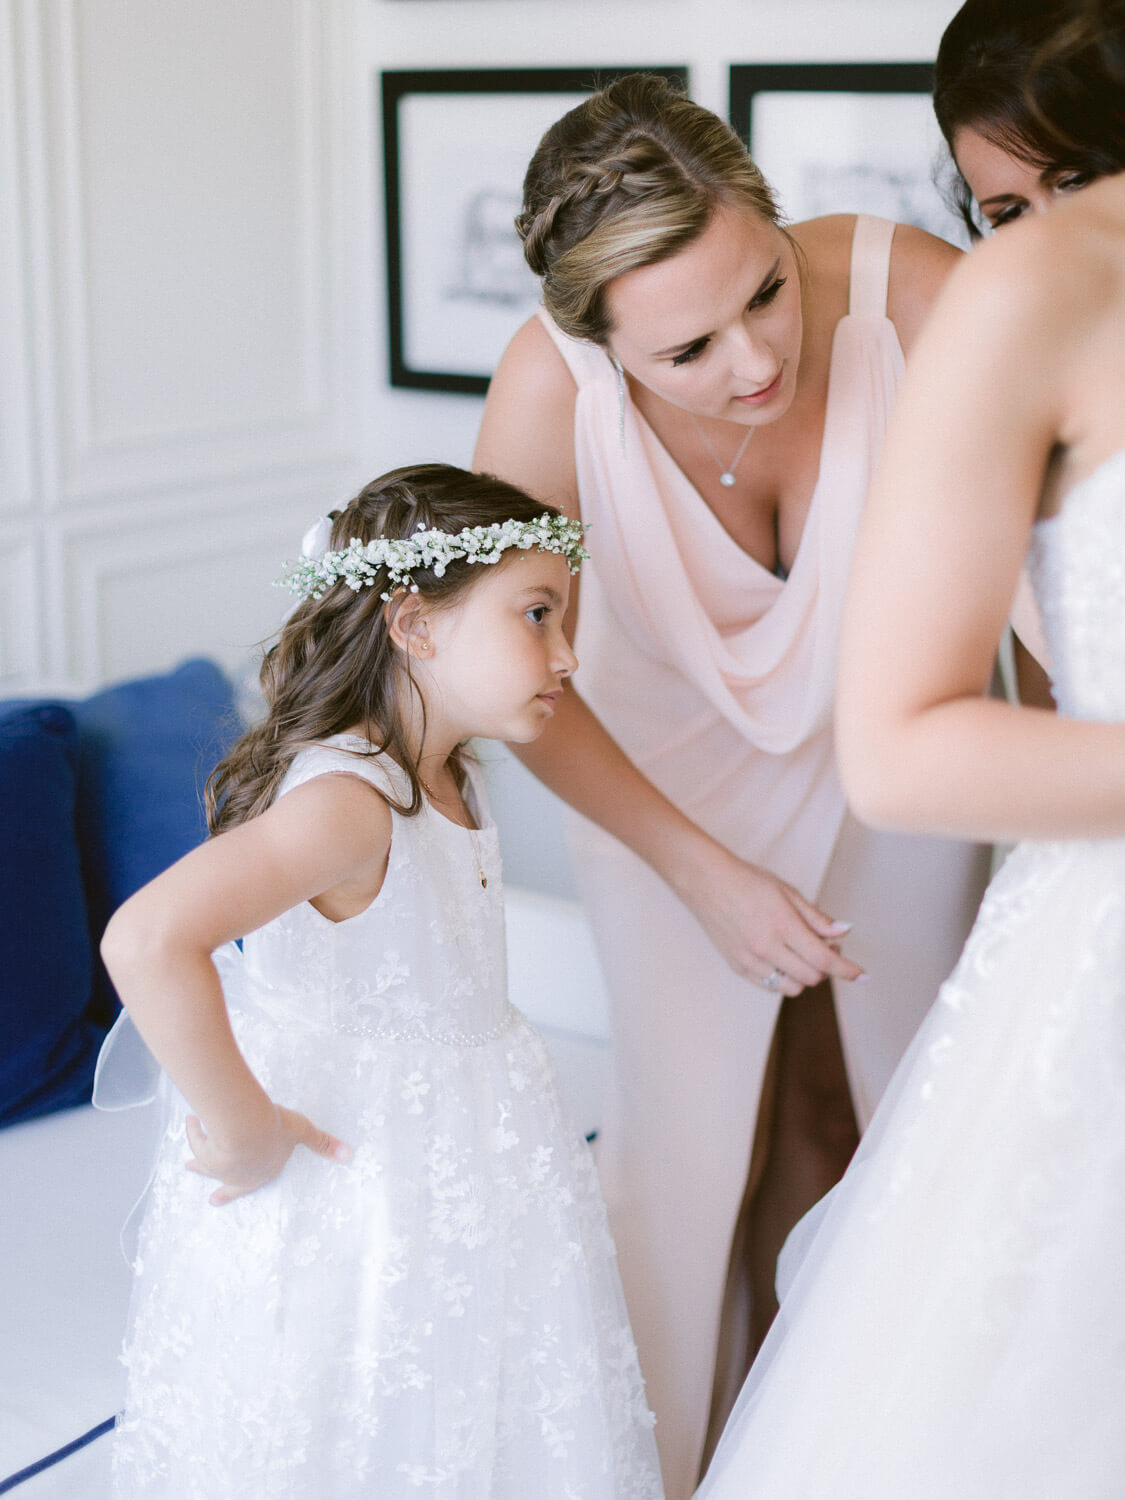 wedding flower girl attentive look at the bride's preparations by Portugal Wedding Photographer